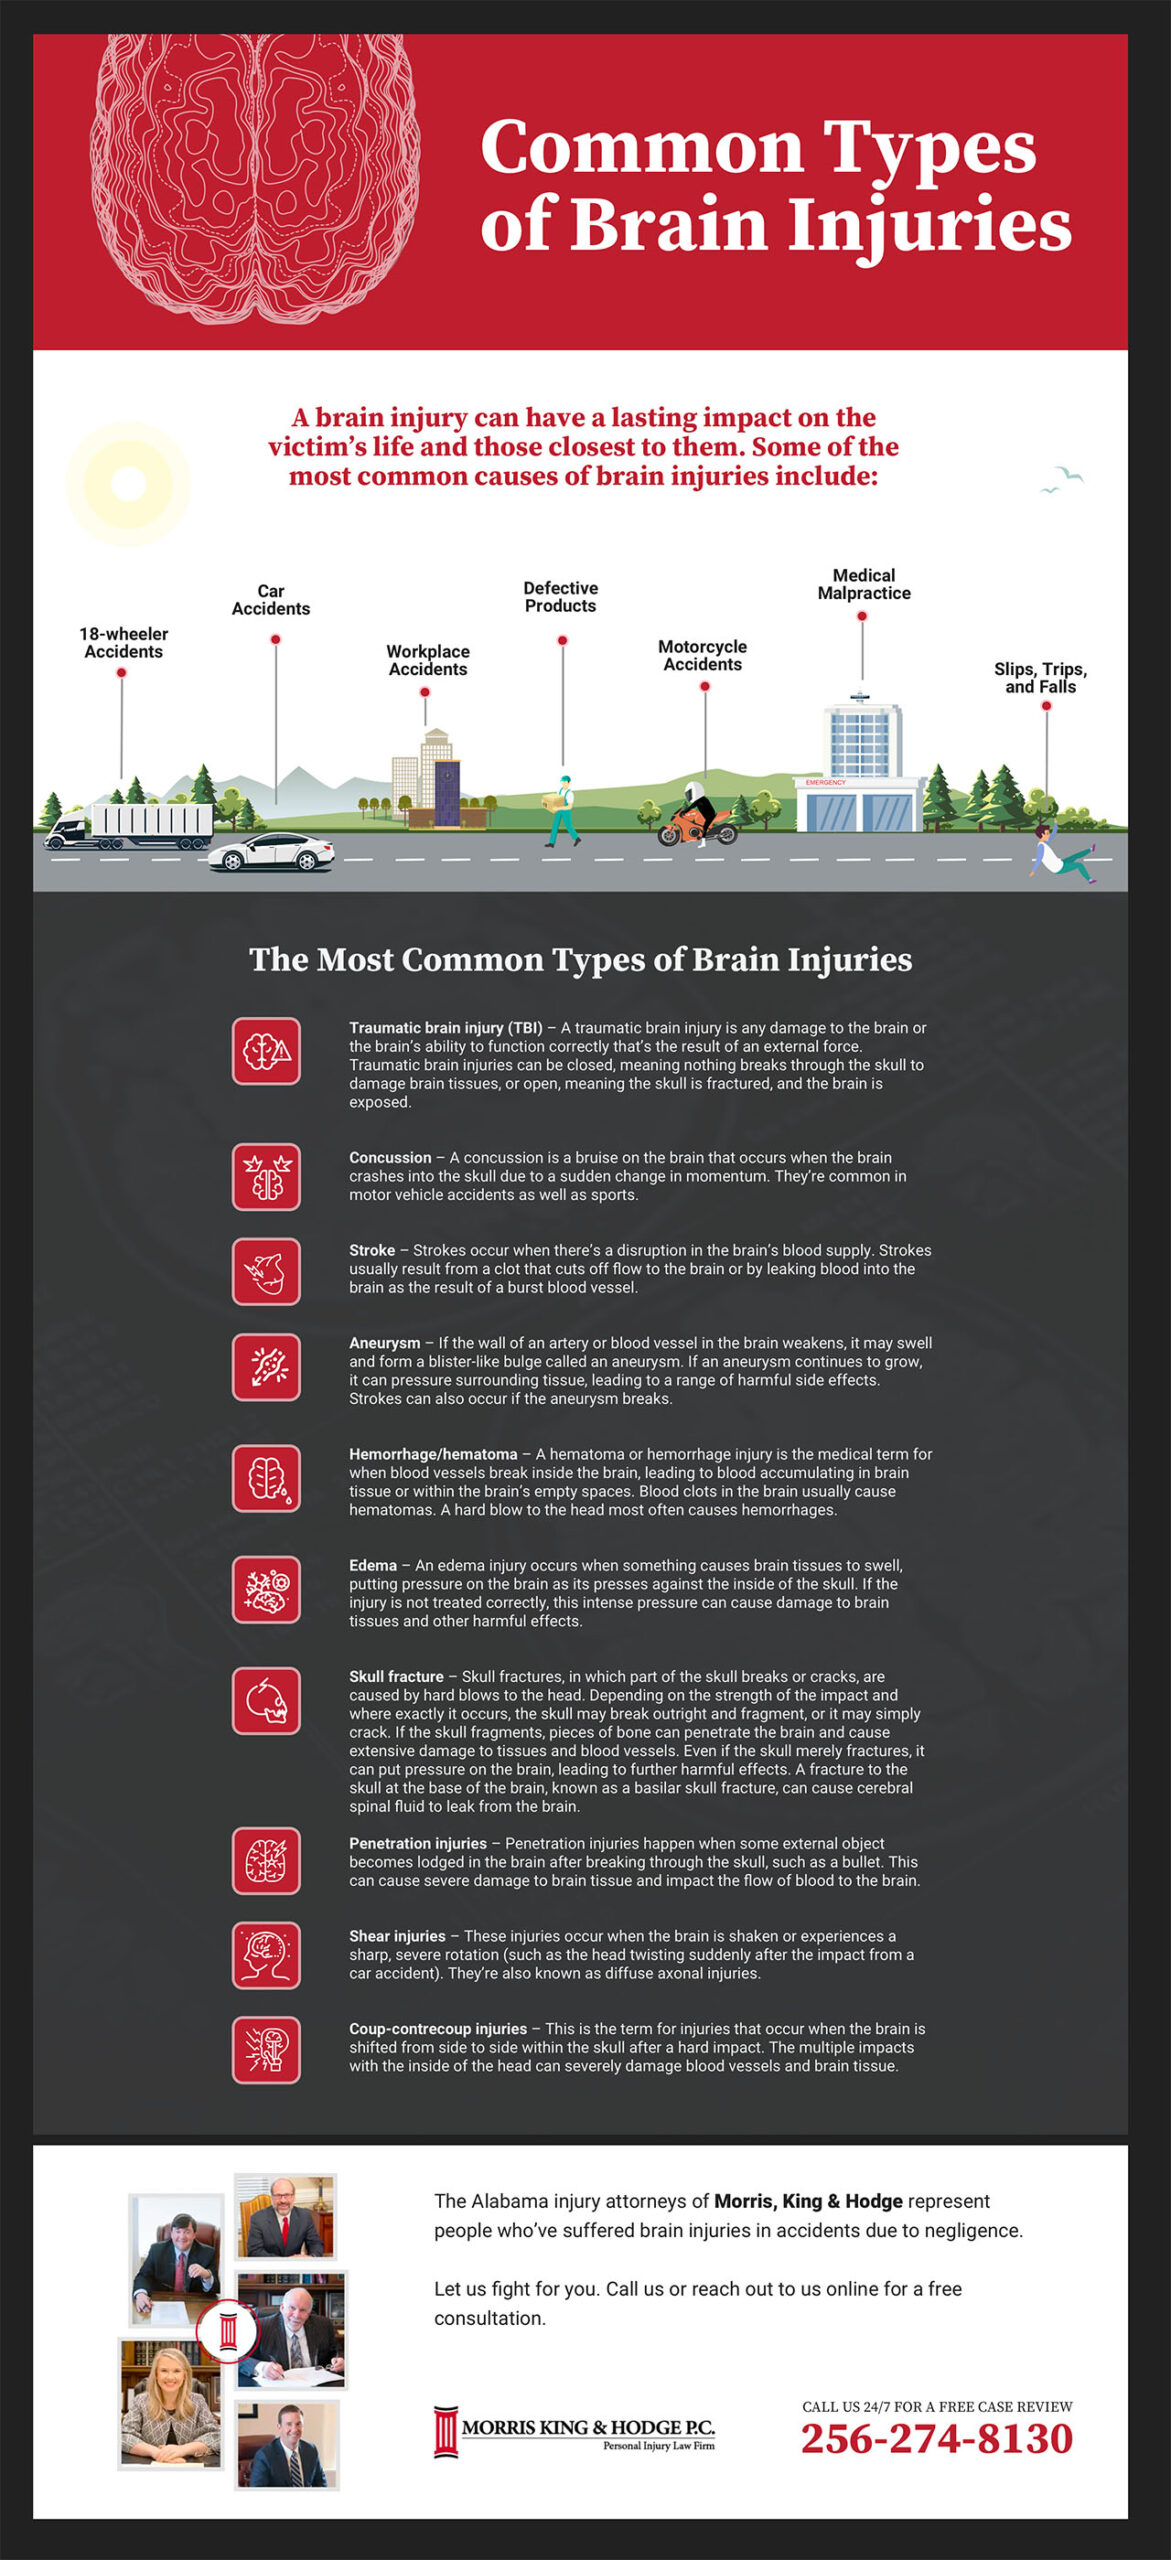 Common Types of Brain Injuries Infographic